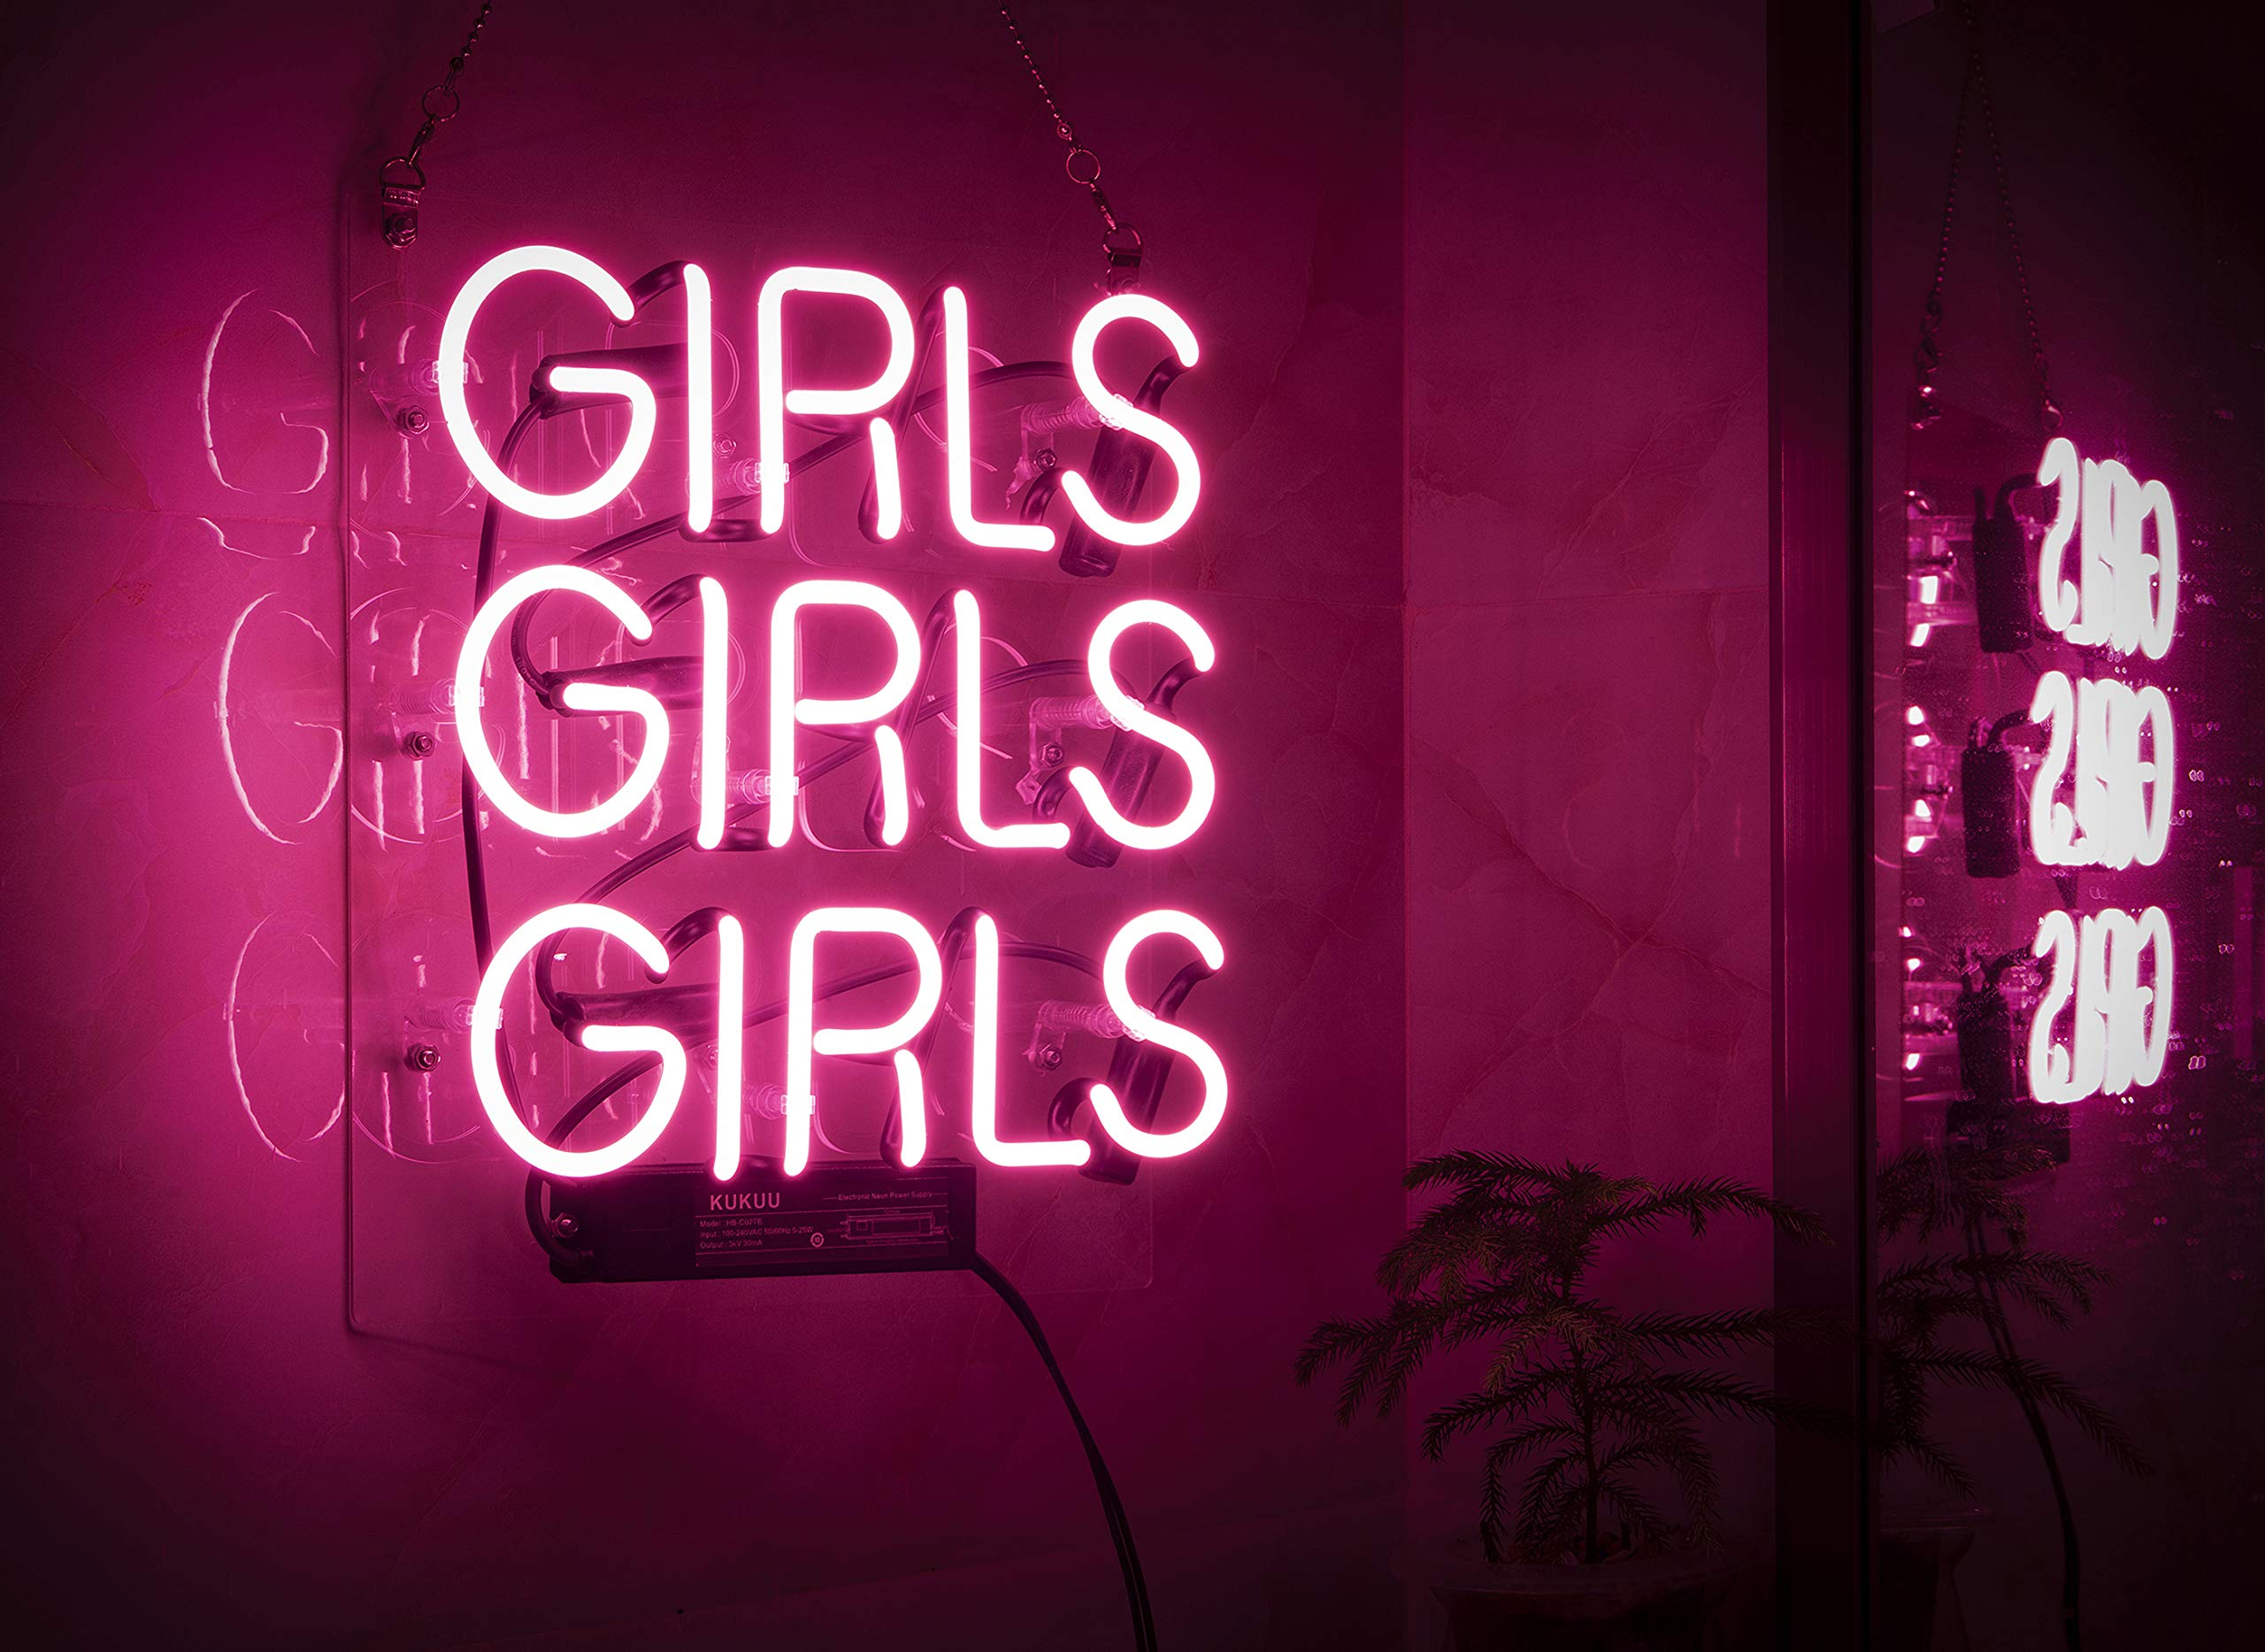 Neon Signs Girl Girls Girls Girls Neon Signs Girl Wall Decor Neon Light Sign Led Sign for Bedroom Neon Words Cool Art Neon Sign Cute Neon Lamps Home Room Beer Bar Custom Red Neon Wall Light 12''x10.6''